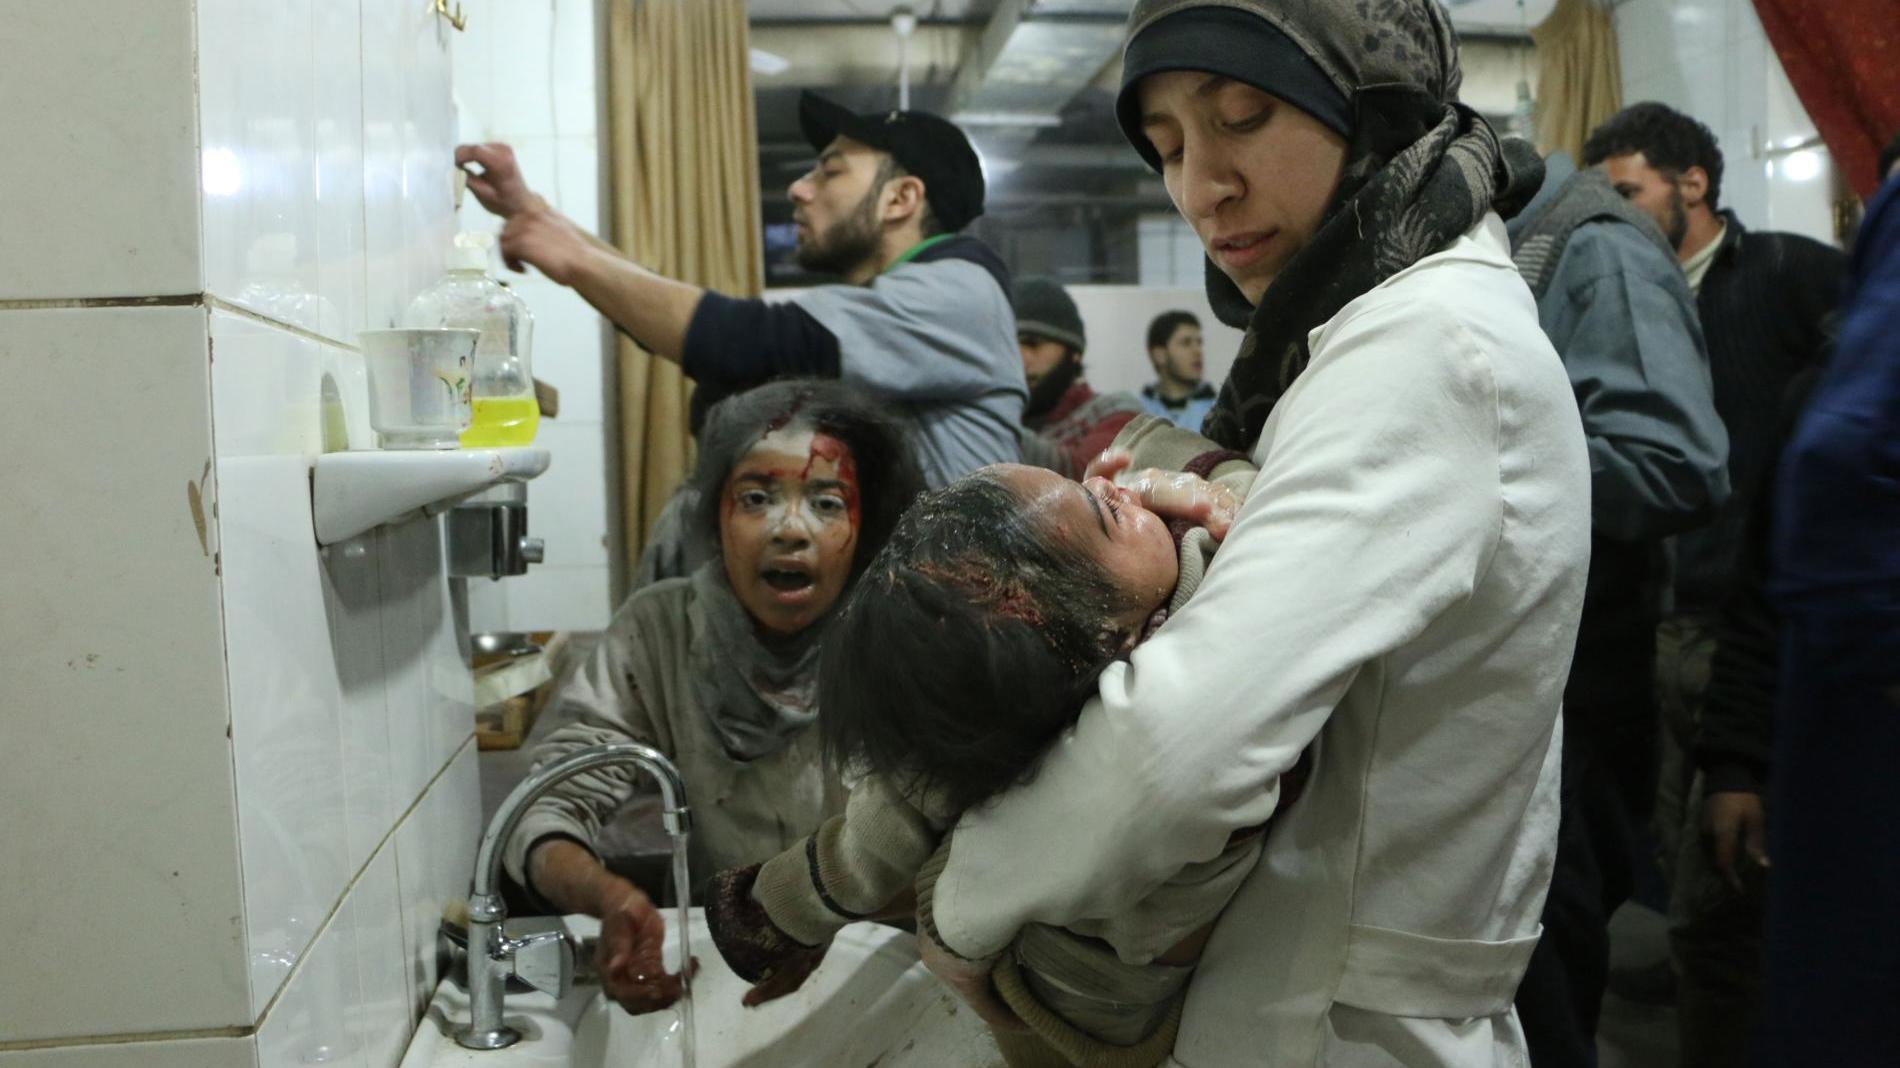 Al Ghouta, Syria - Dr. Amani (R) treats an injured baby amongst other medical staff and victims. (Photo by National Geographic)